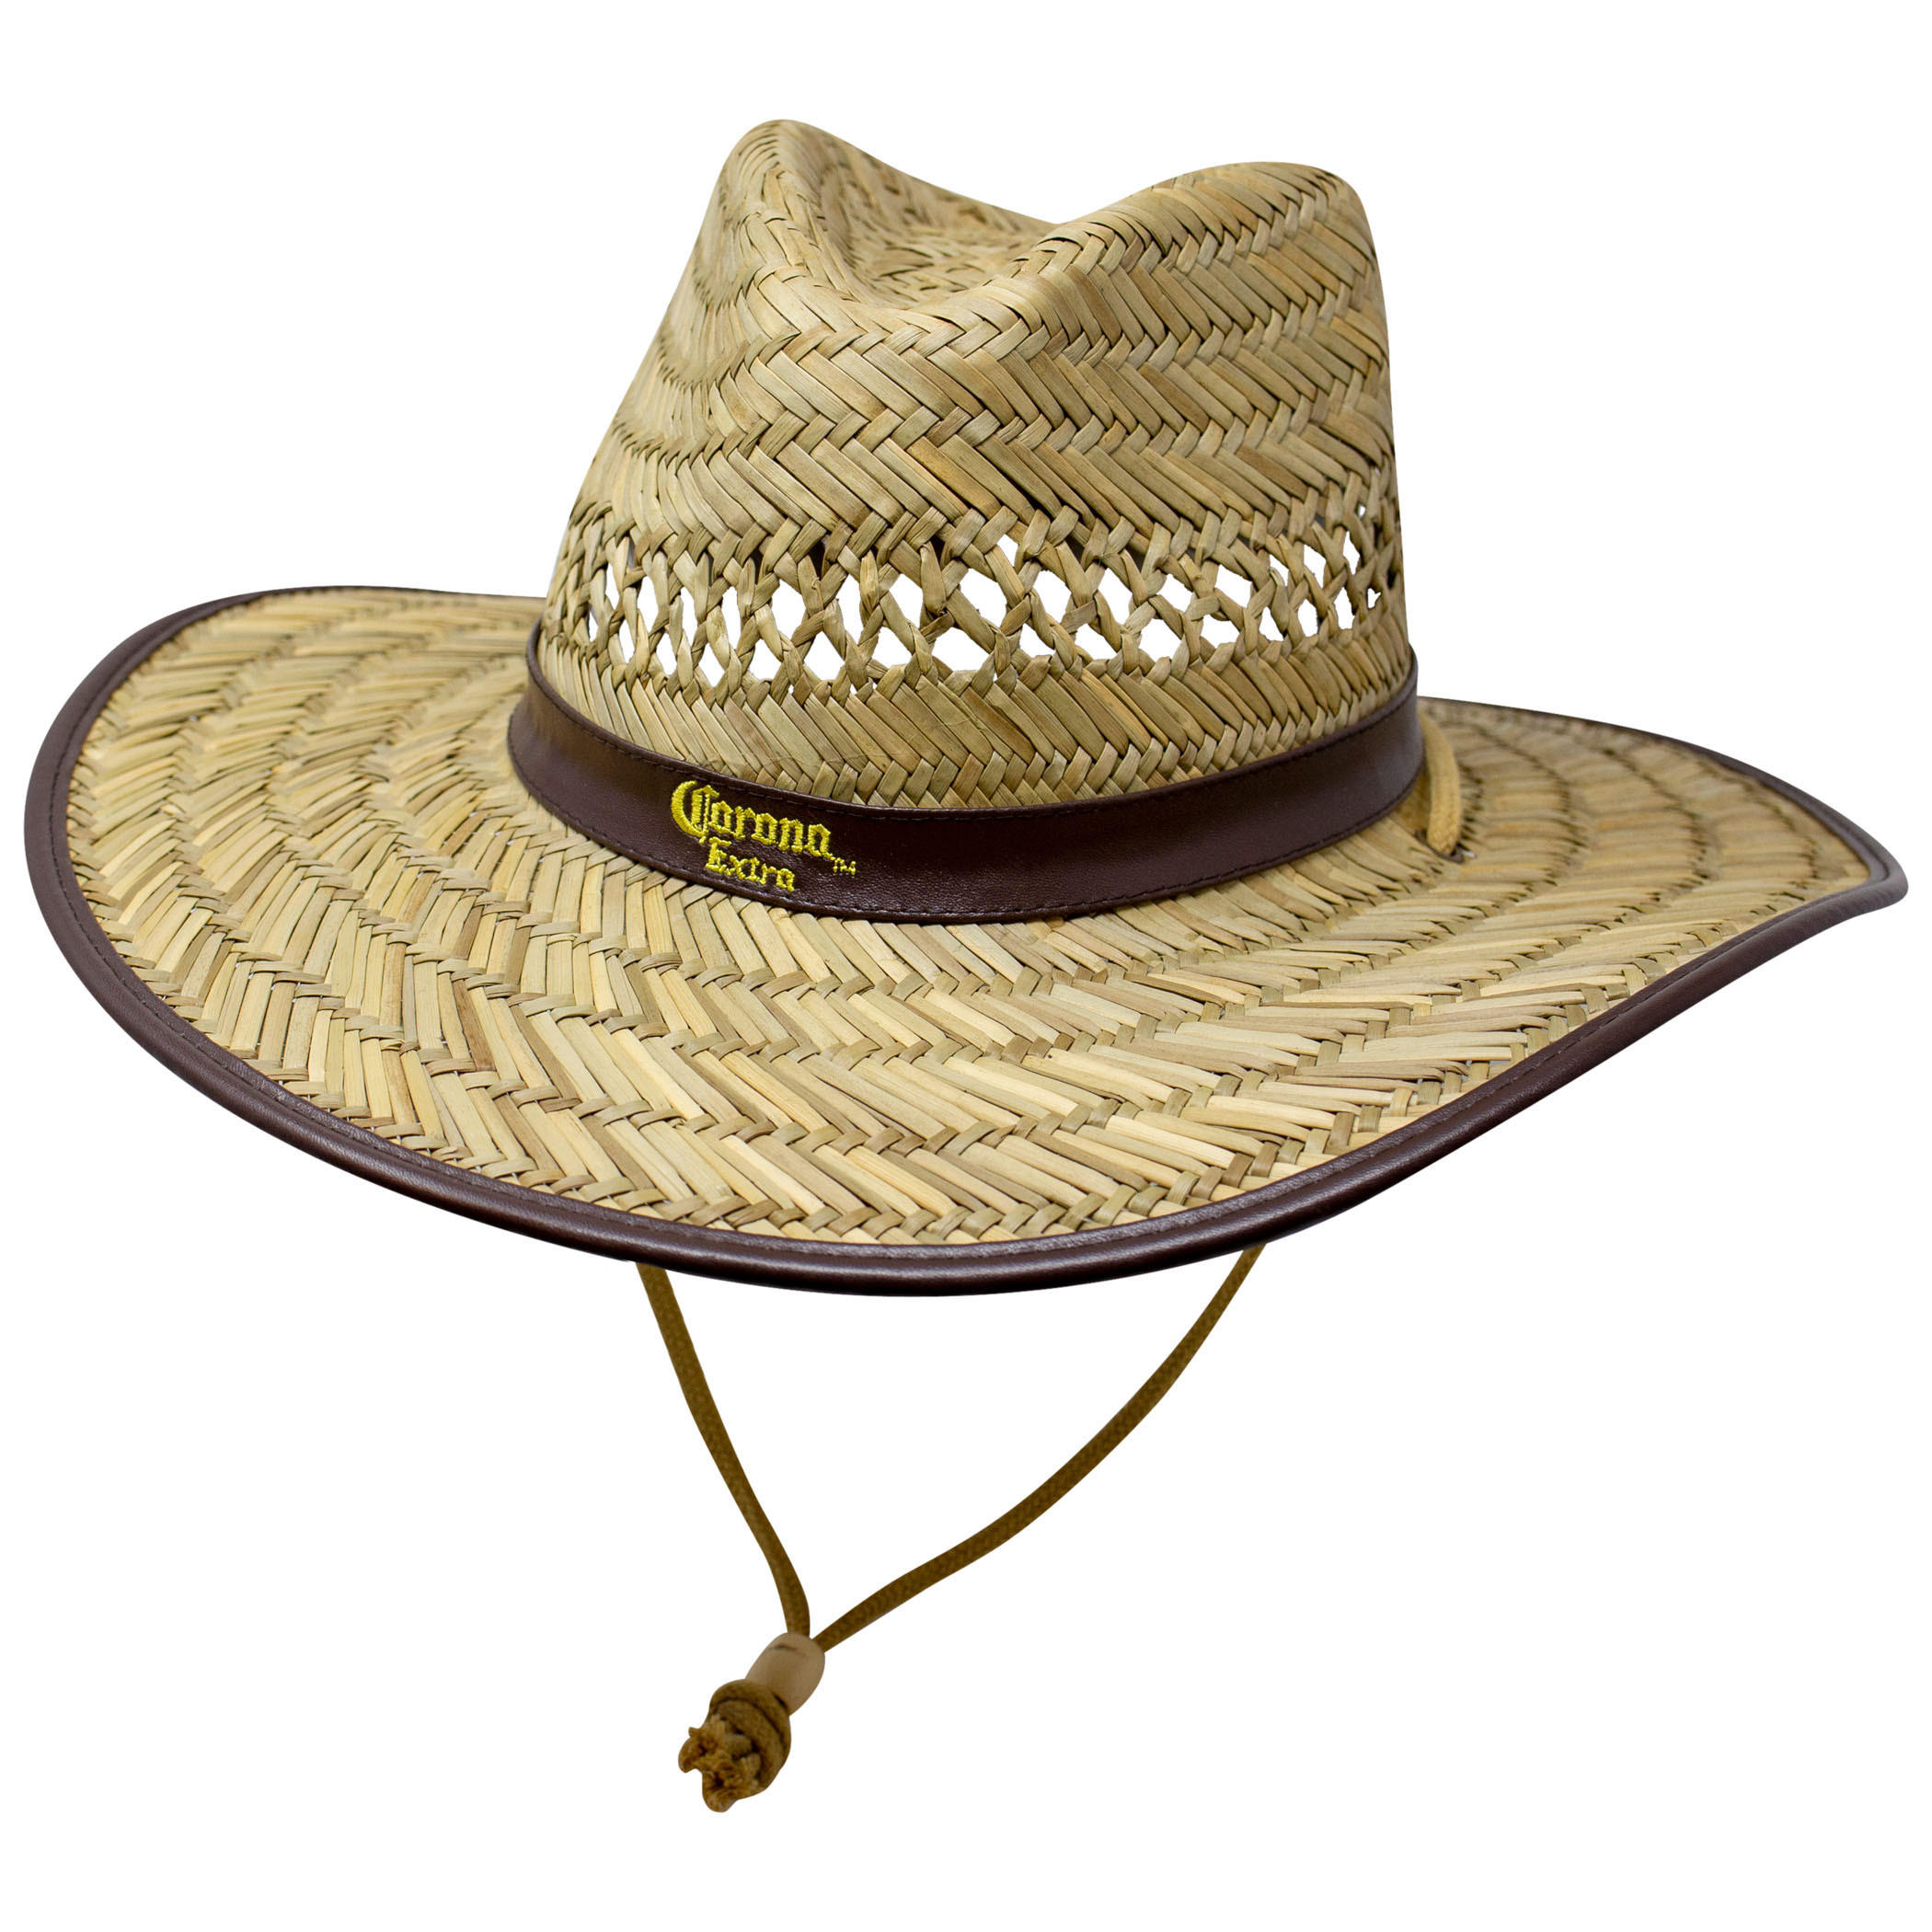 Corona Extra Straw Lifeguards Hat